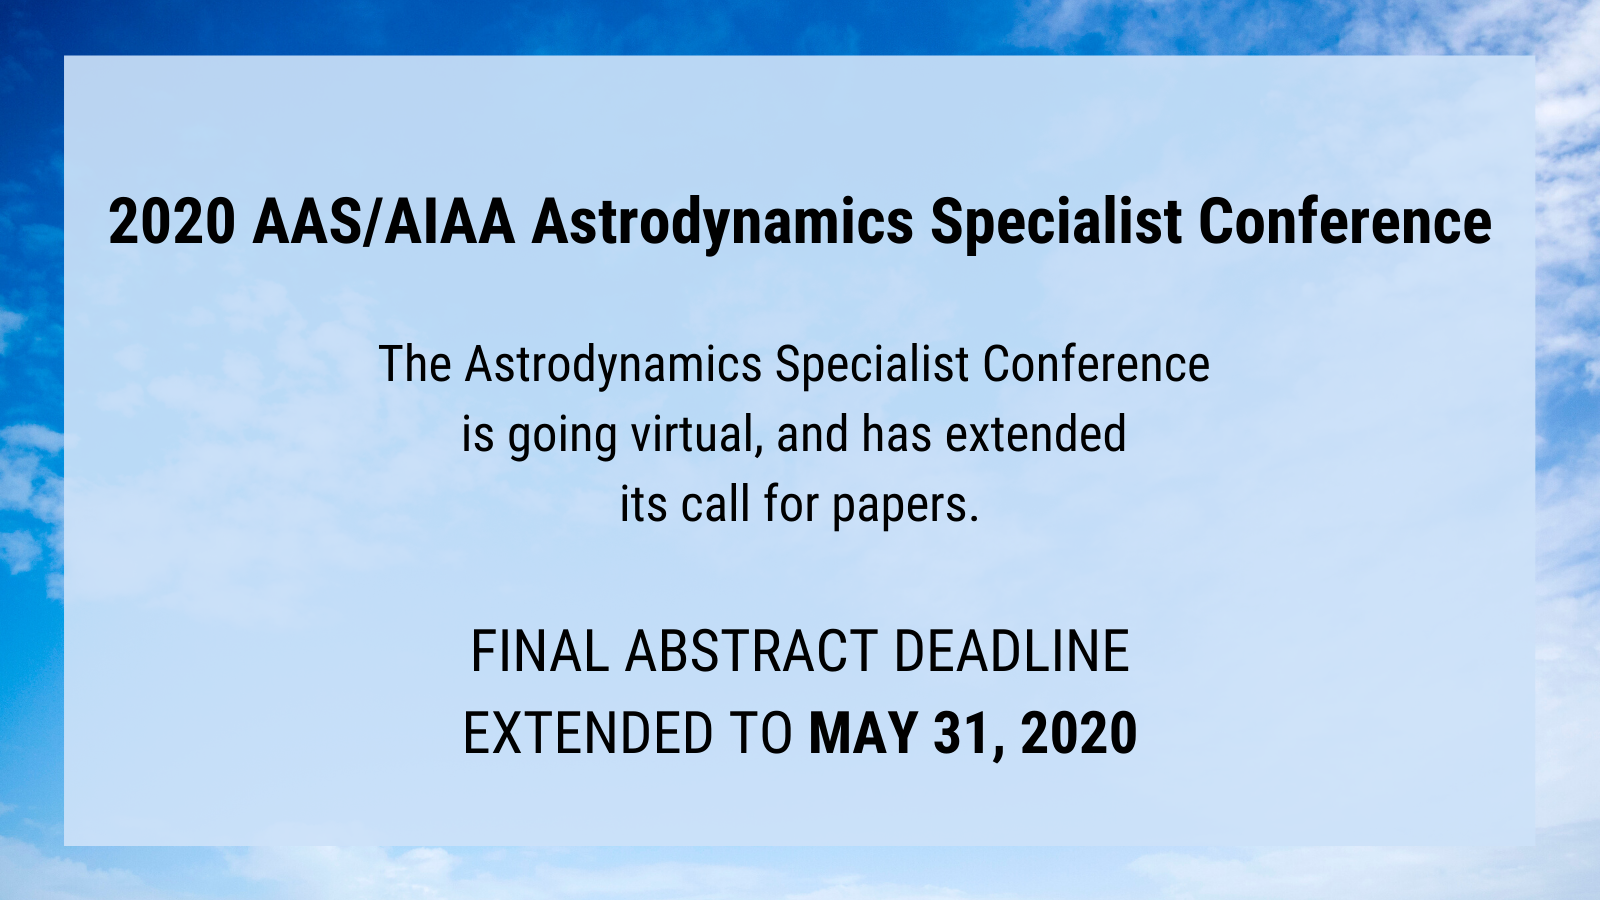 2020 AAS/AIAA Astrodynamics Specialist Conference Update